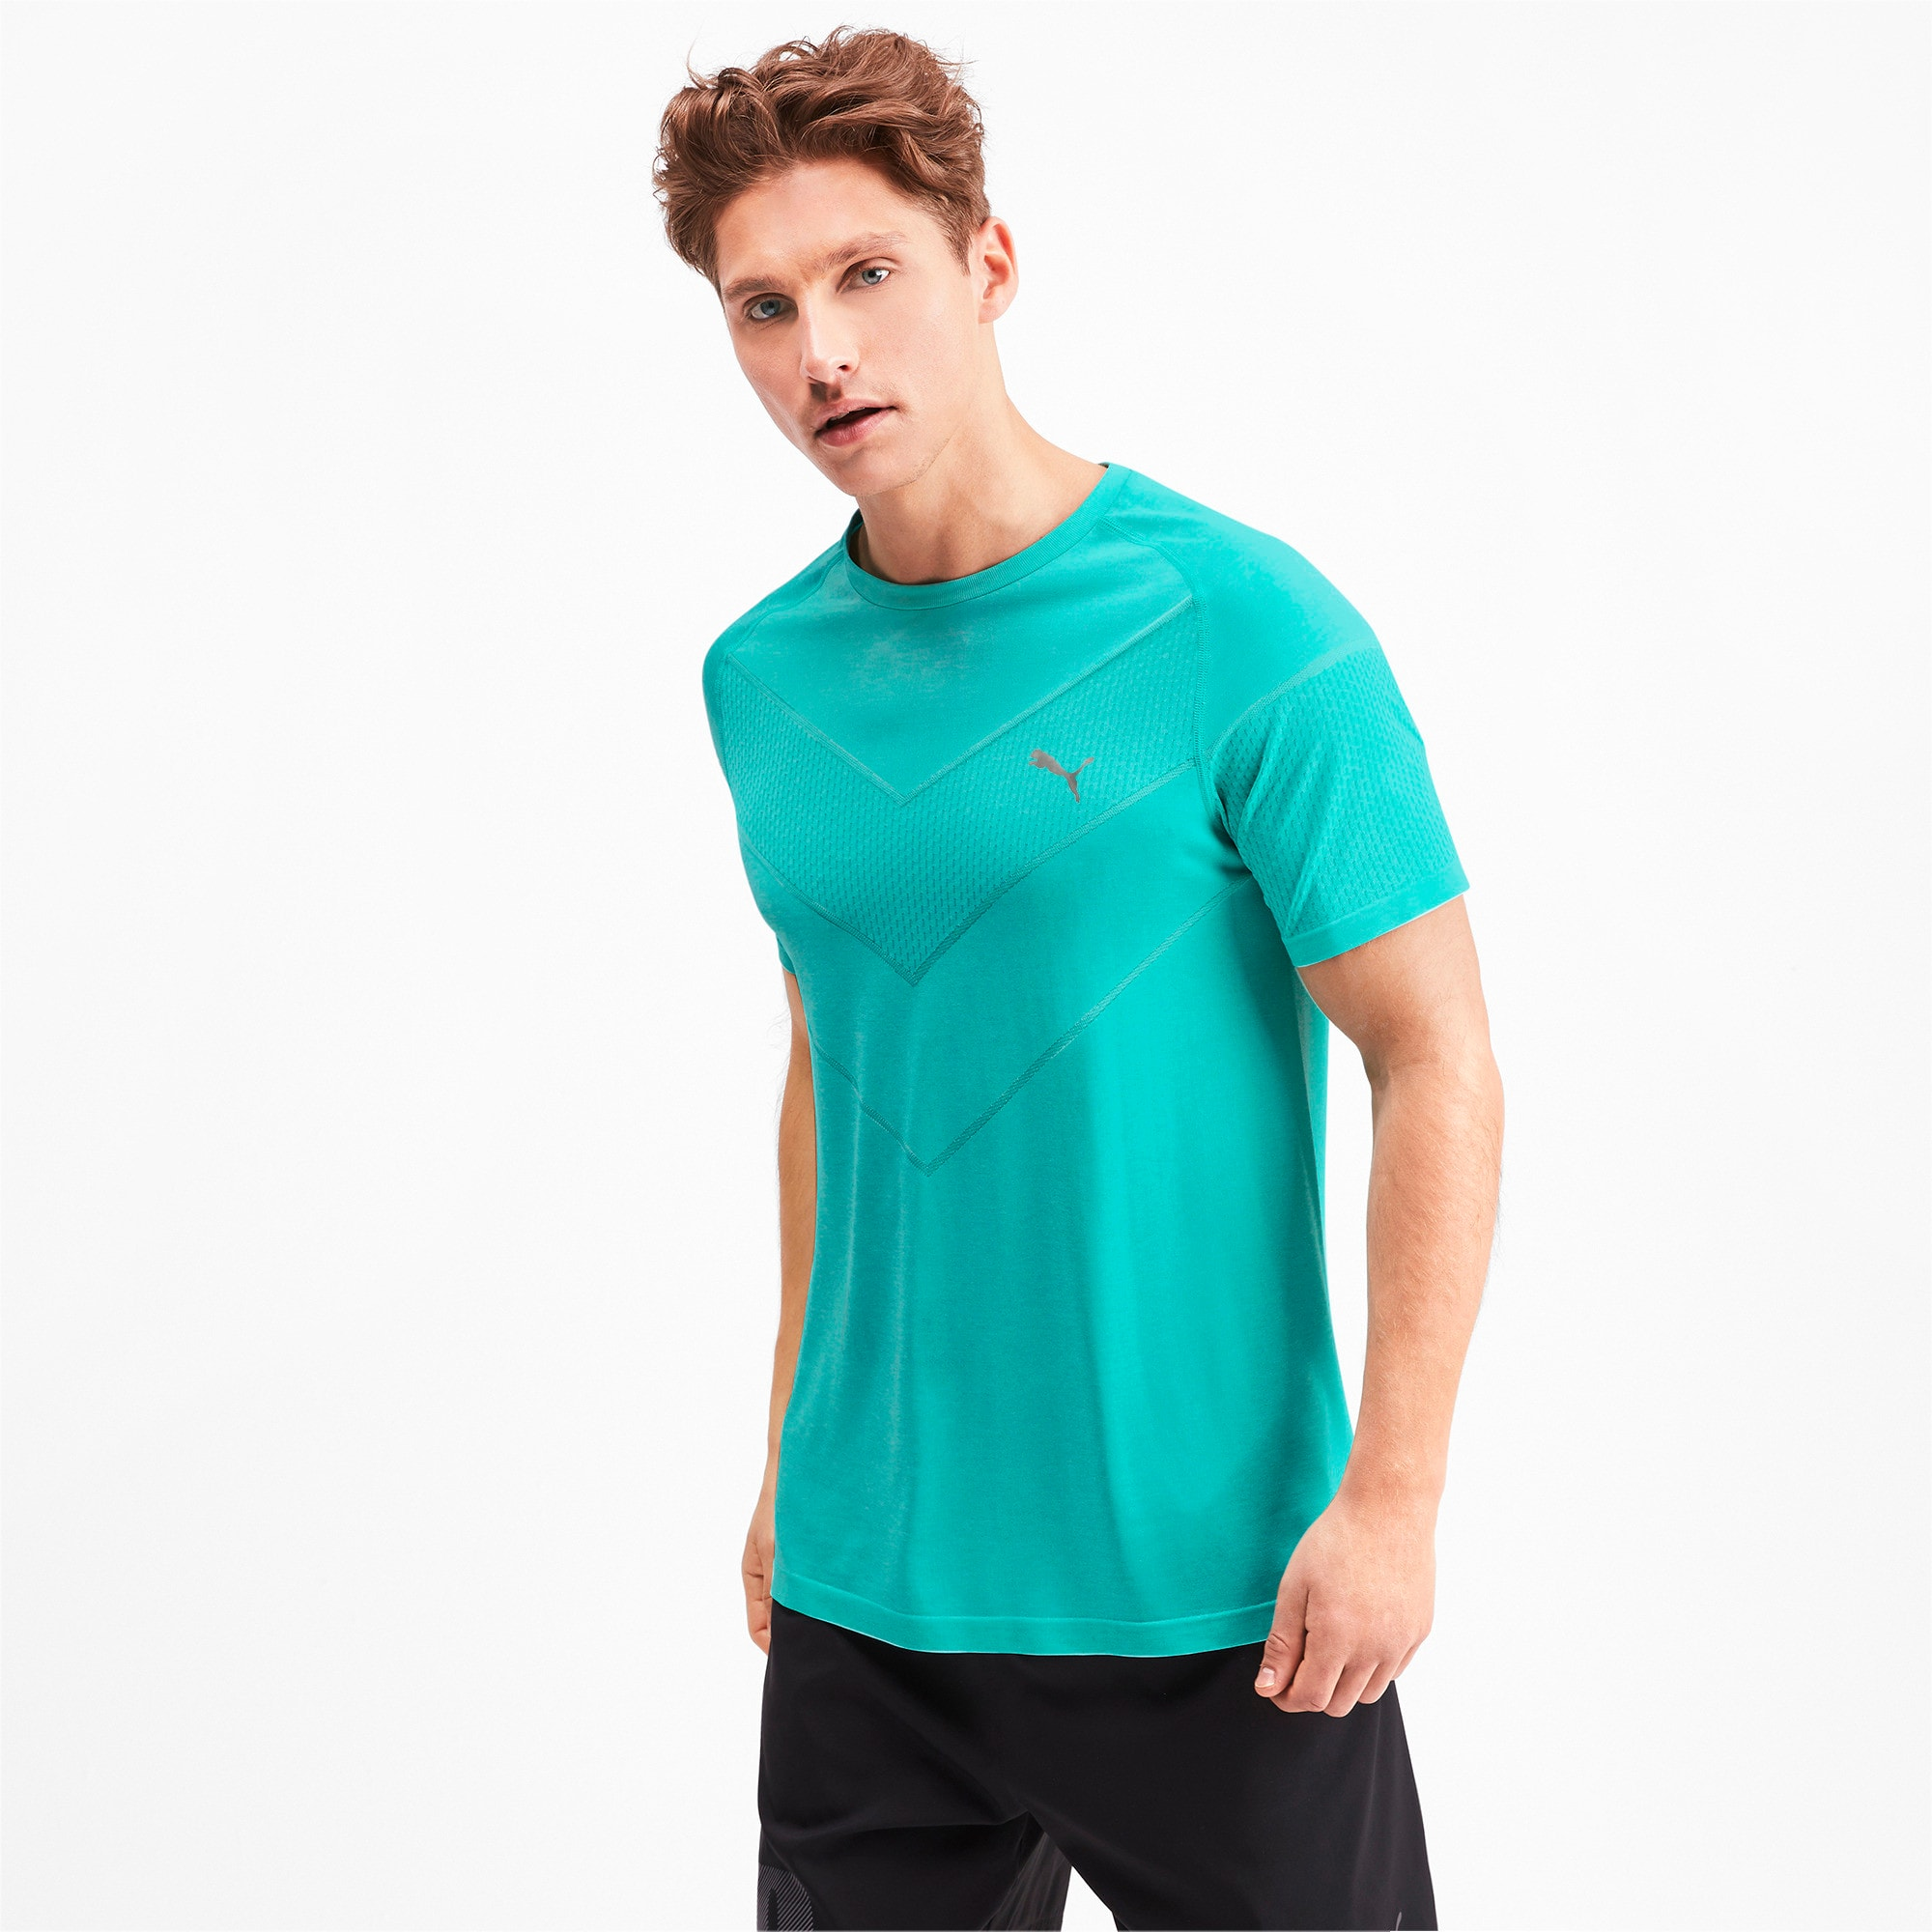 Thumbnail 1 of Reactive evoKNIT Men's Tee, Blue Turquoise Heather, medium